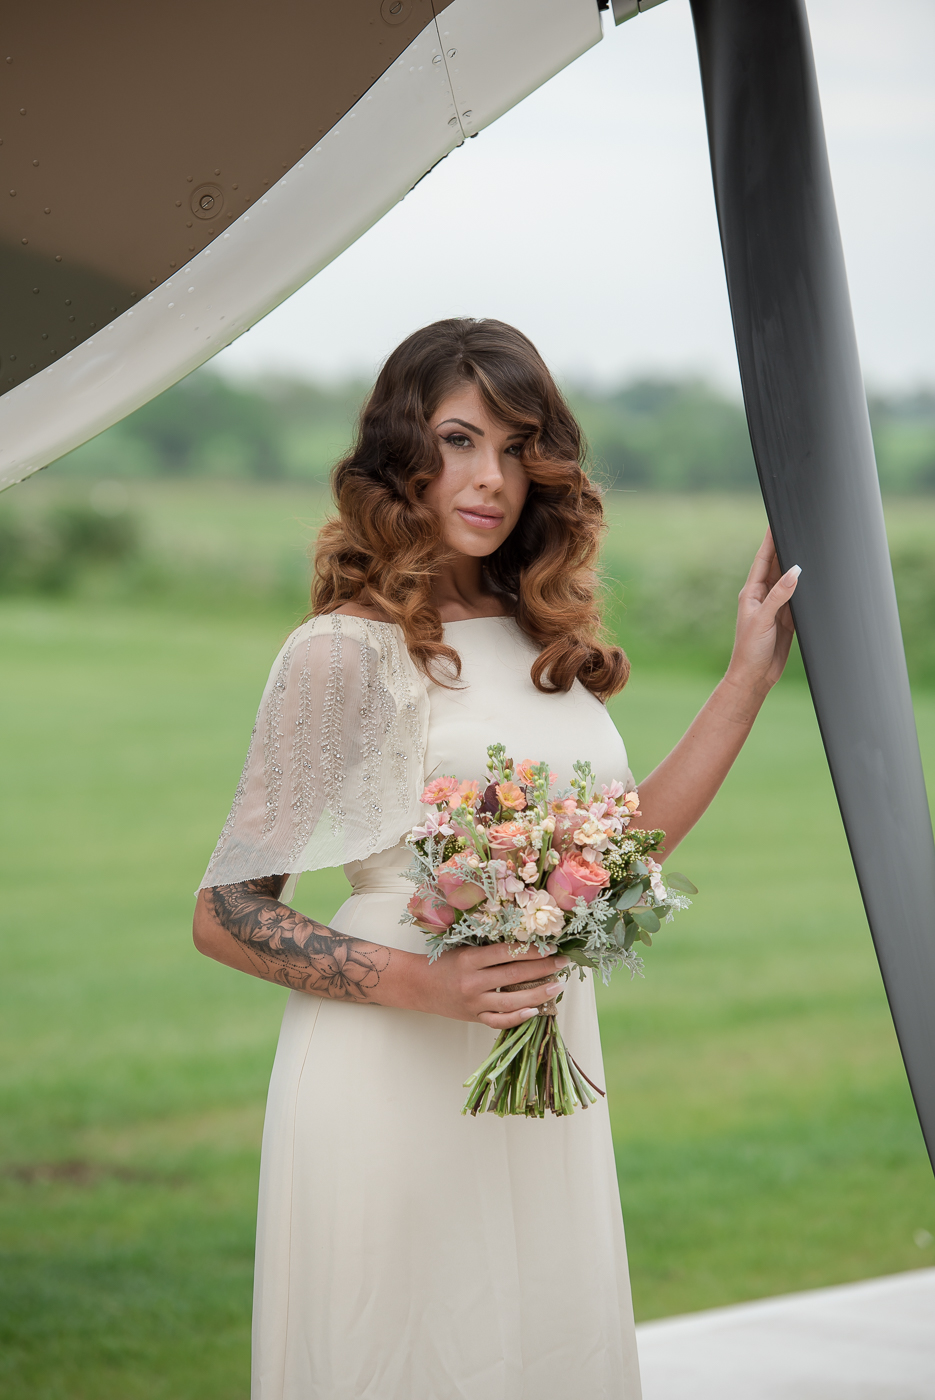 Vintage 1940s wedding style with a contemporary twist and a